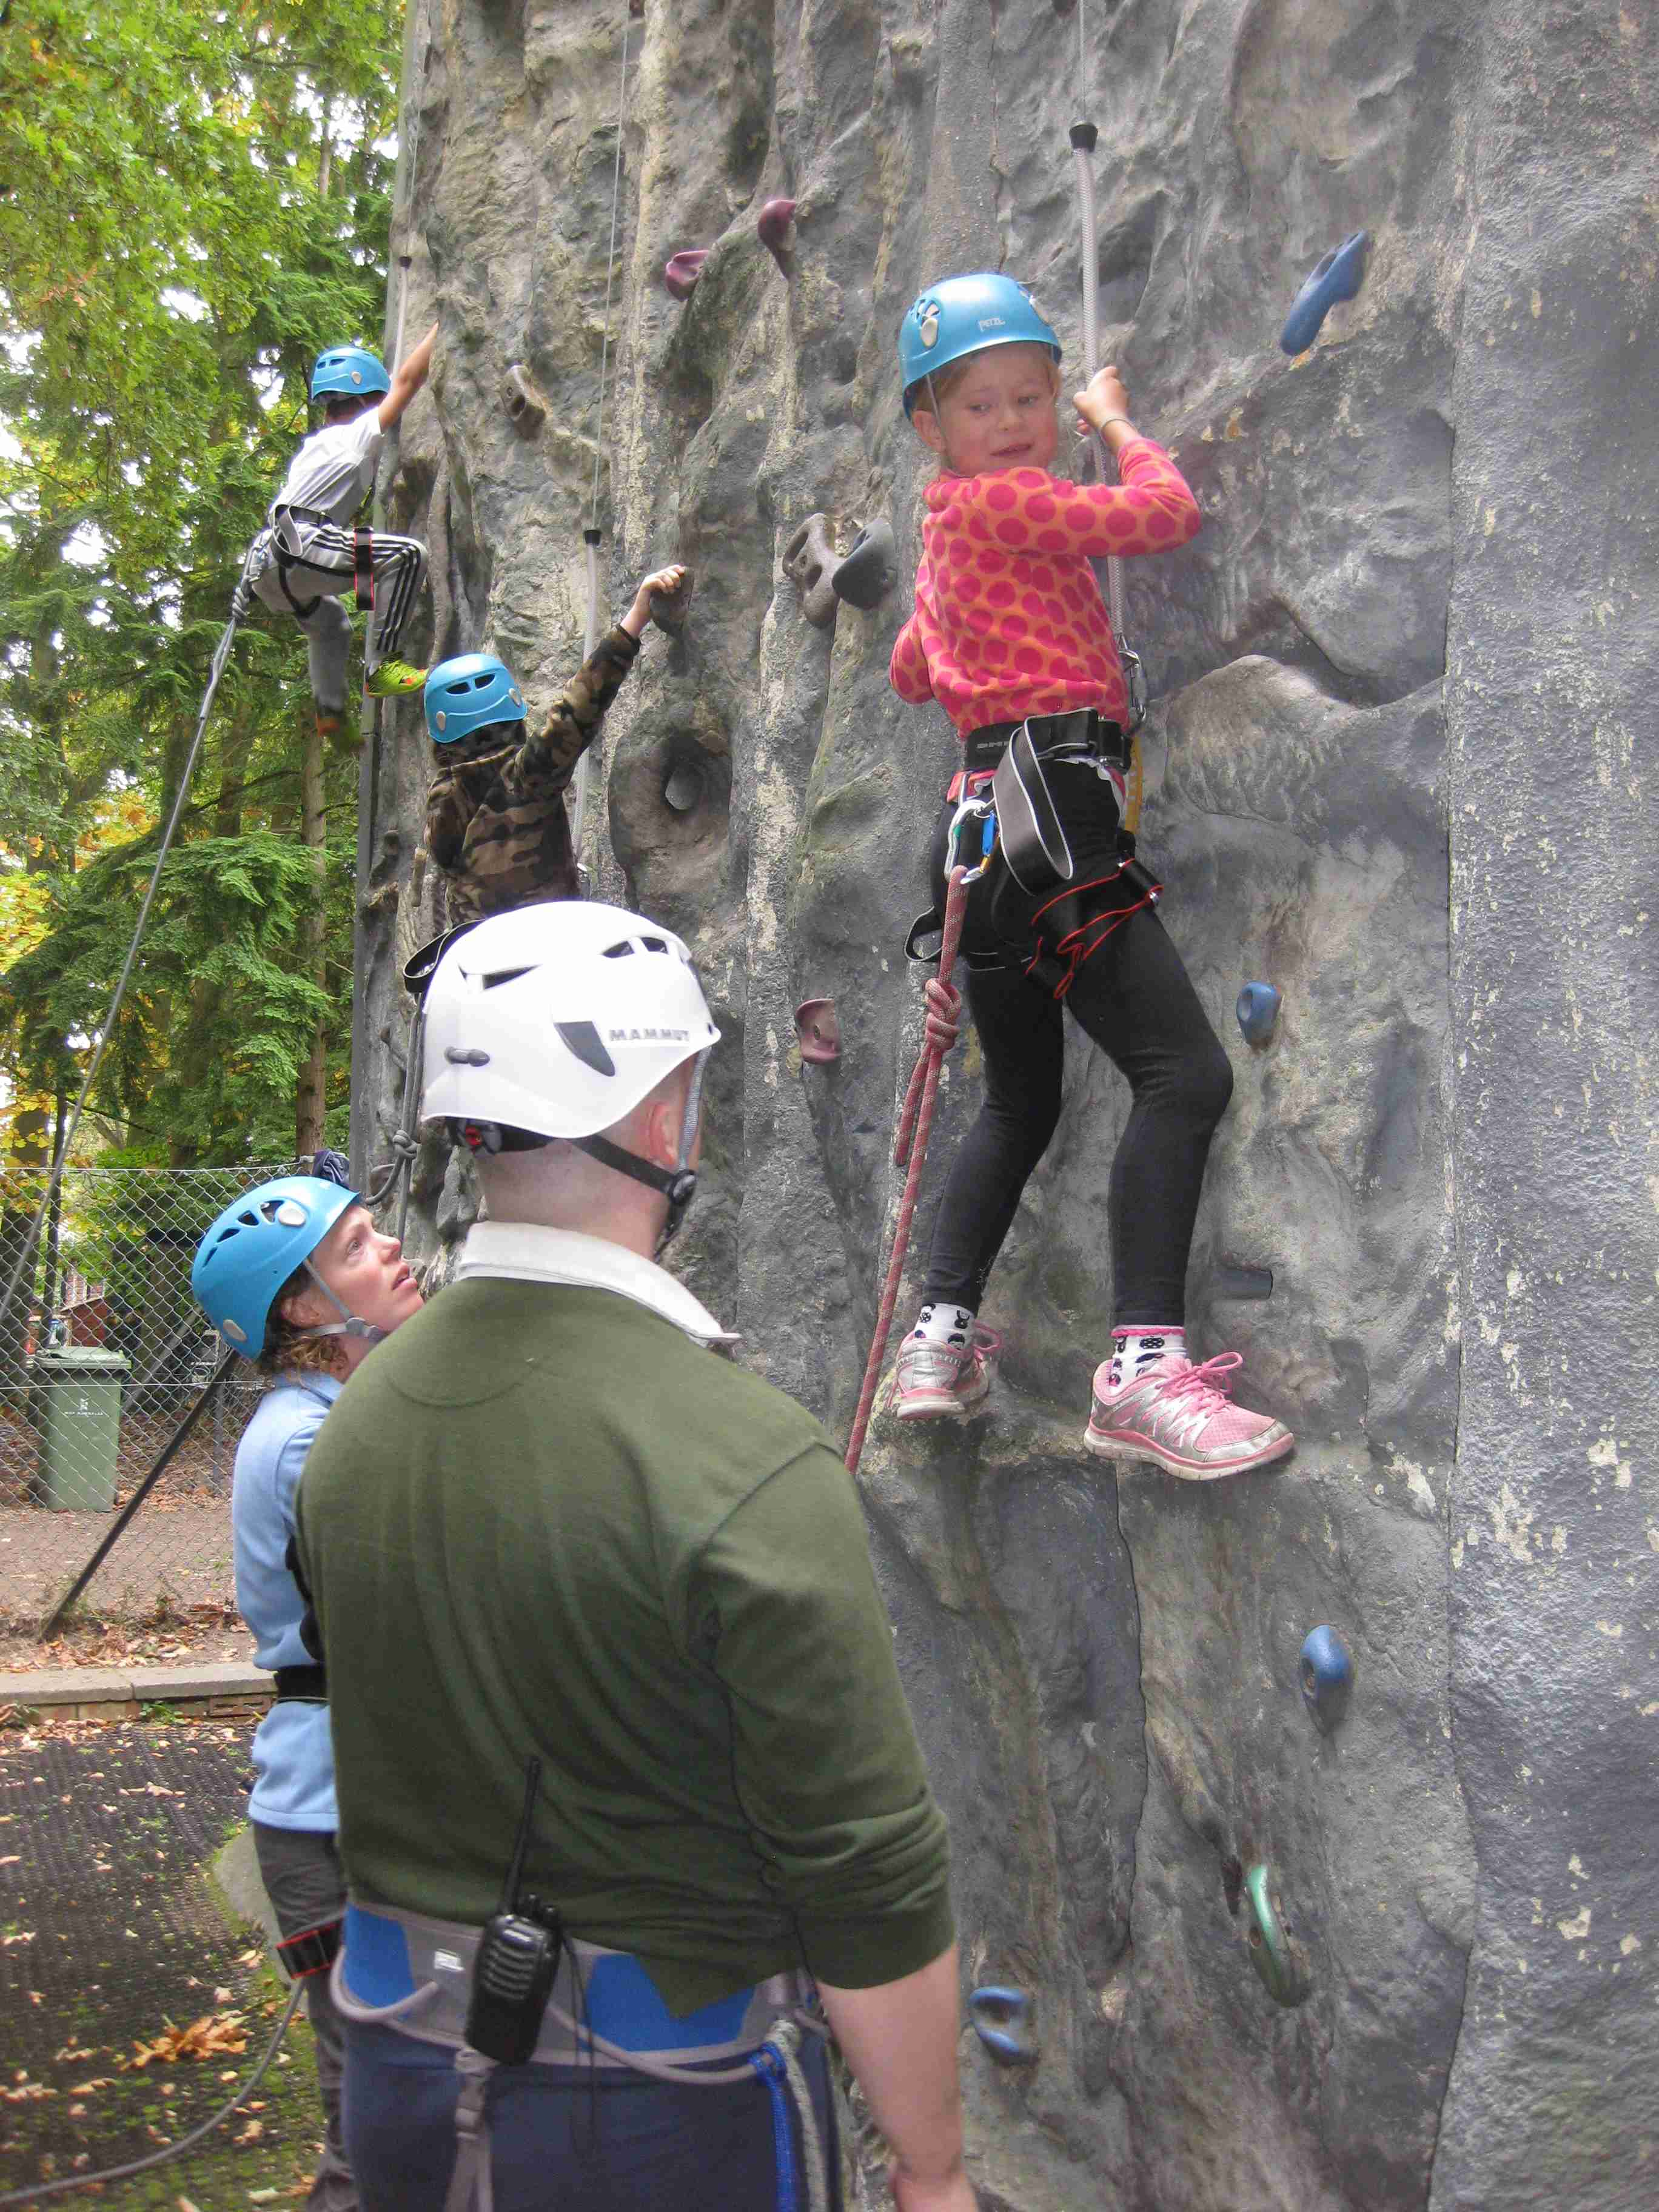 2017-10-07 7M Holiday Climbing (13)